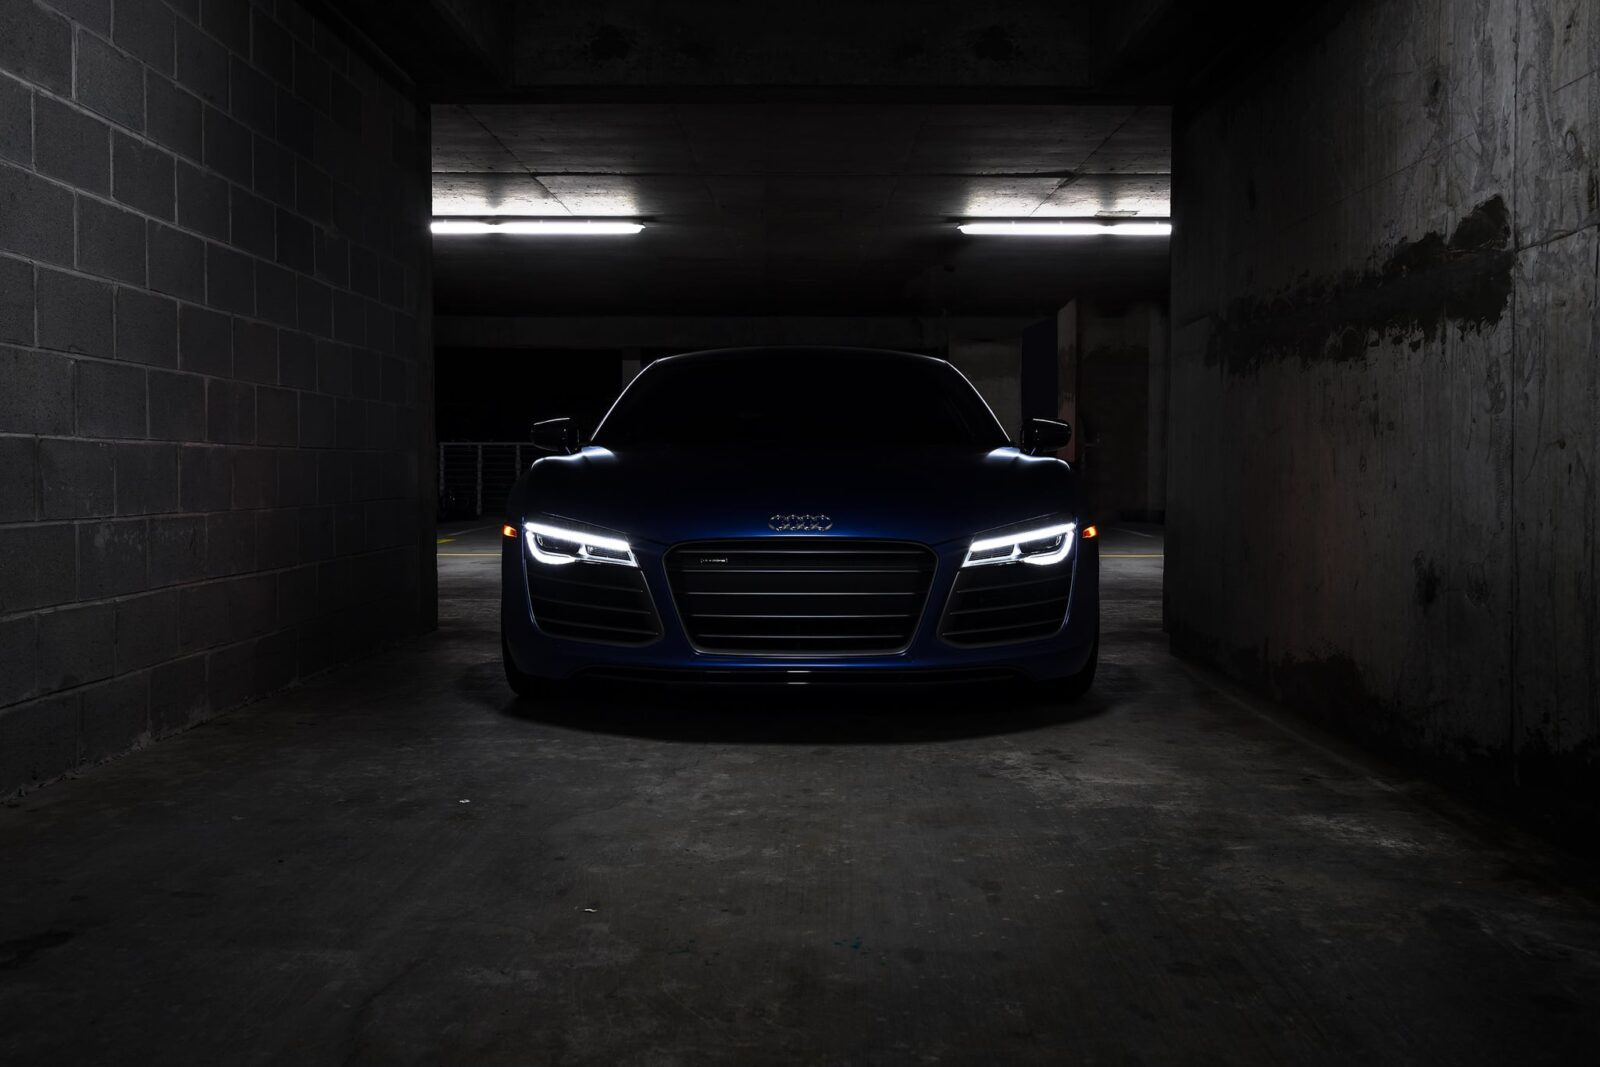 2015 Audi R8 V10 Plus Hd Wallpapers Download